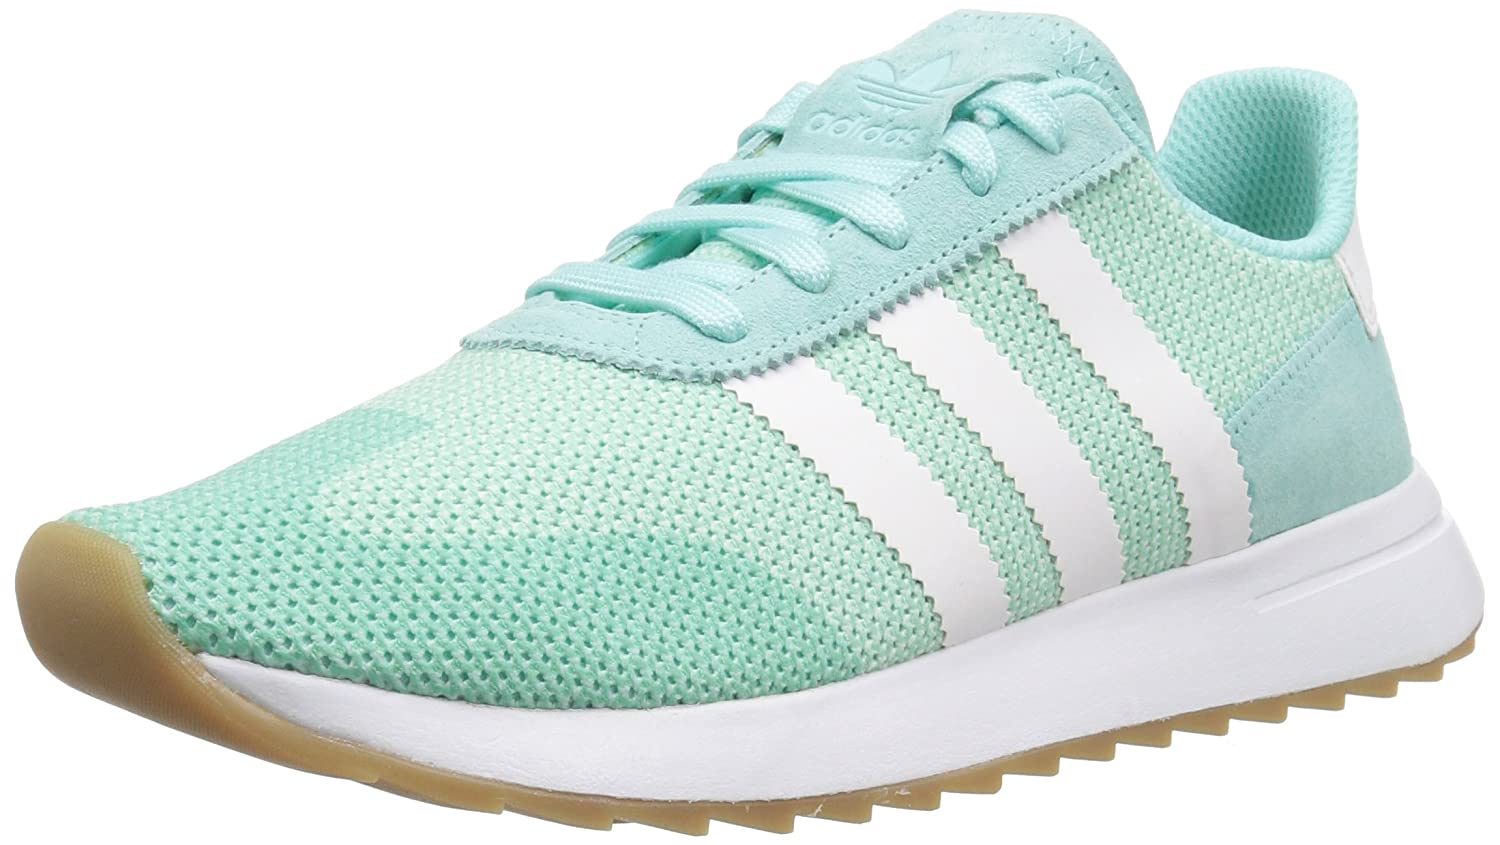 adidas Originals Women's FLB_Runner W Running Shoe B075R8PGRJ 6 B(M) US|Energy Aqua Fabric, Ftwr White, Gum